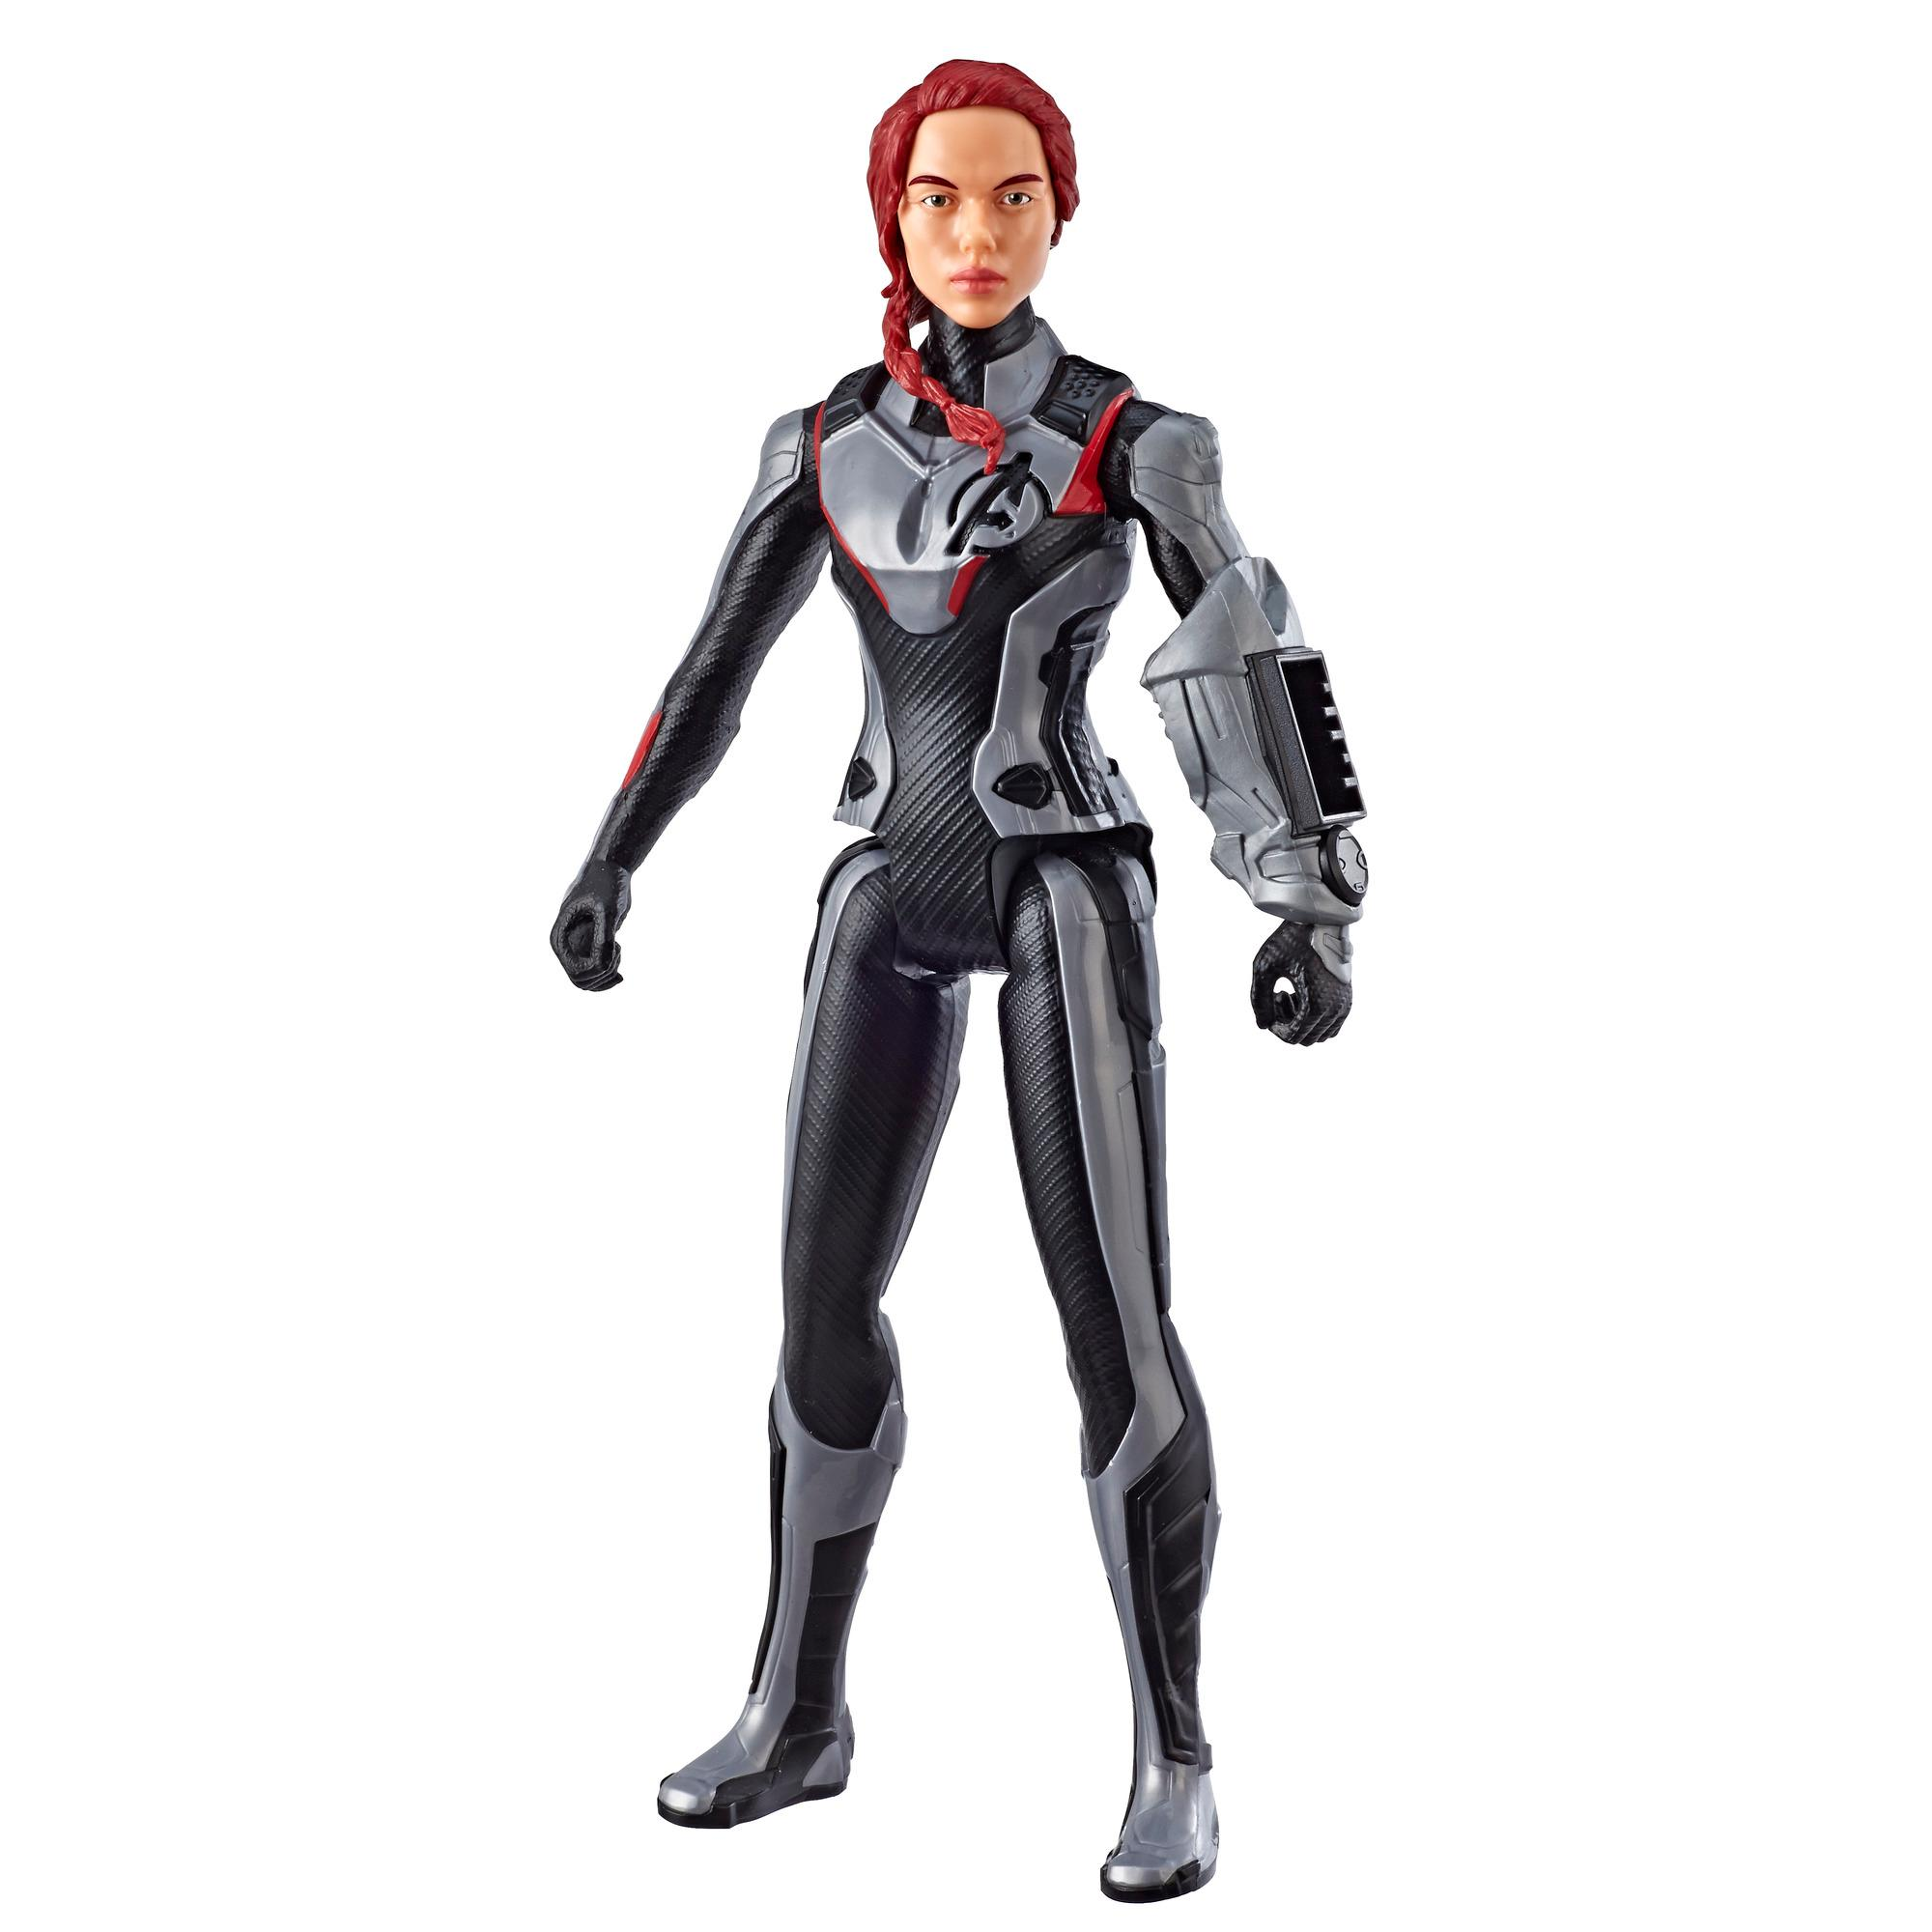 Marvel Avengers : Phase finale Titan Hero Series - Figurine jouet de superhéroïne Black Widow de 30 cm avec port Titan Hero Power FX